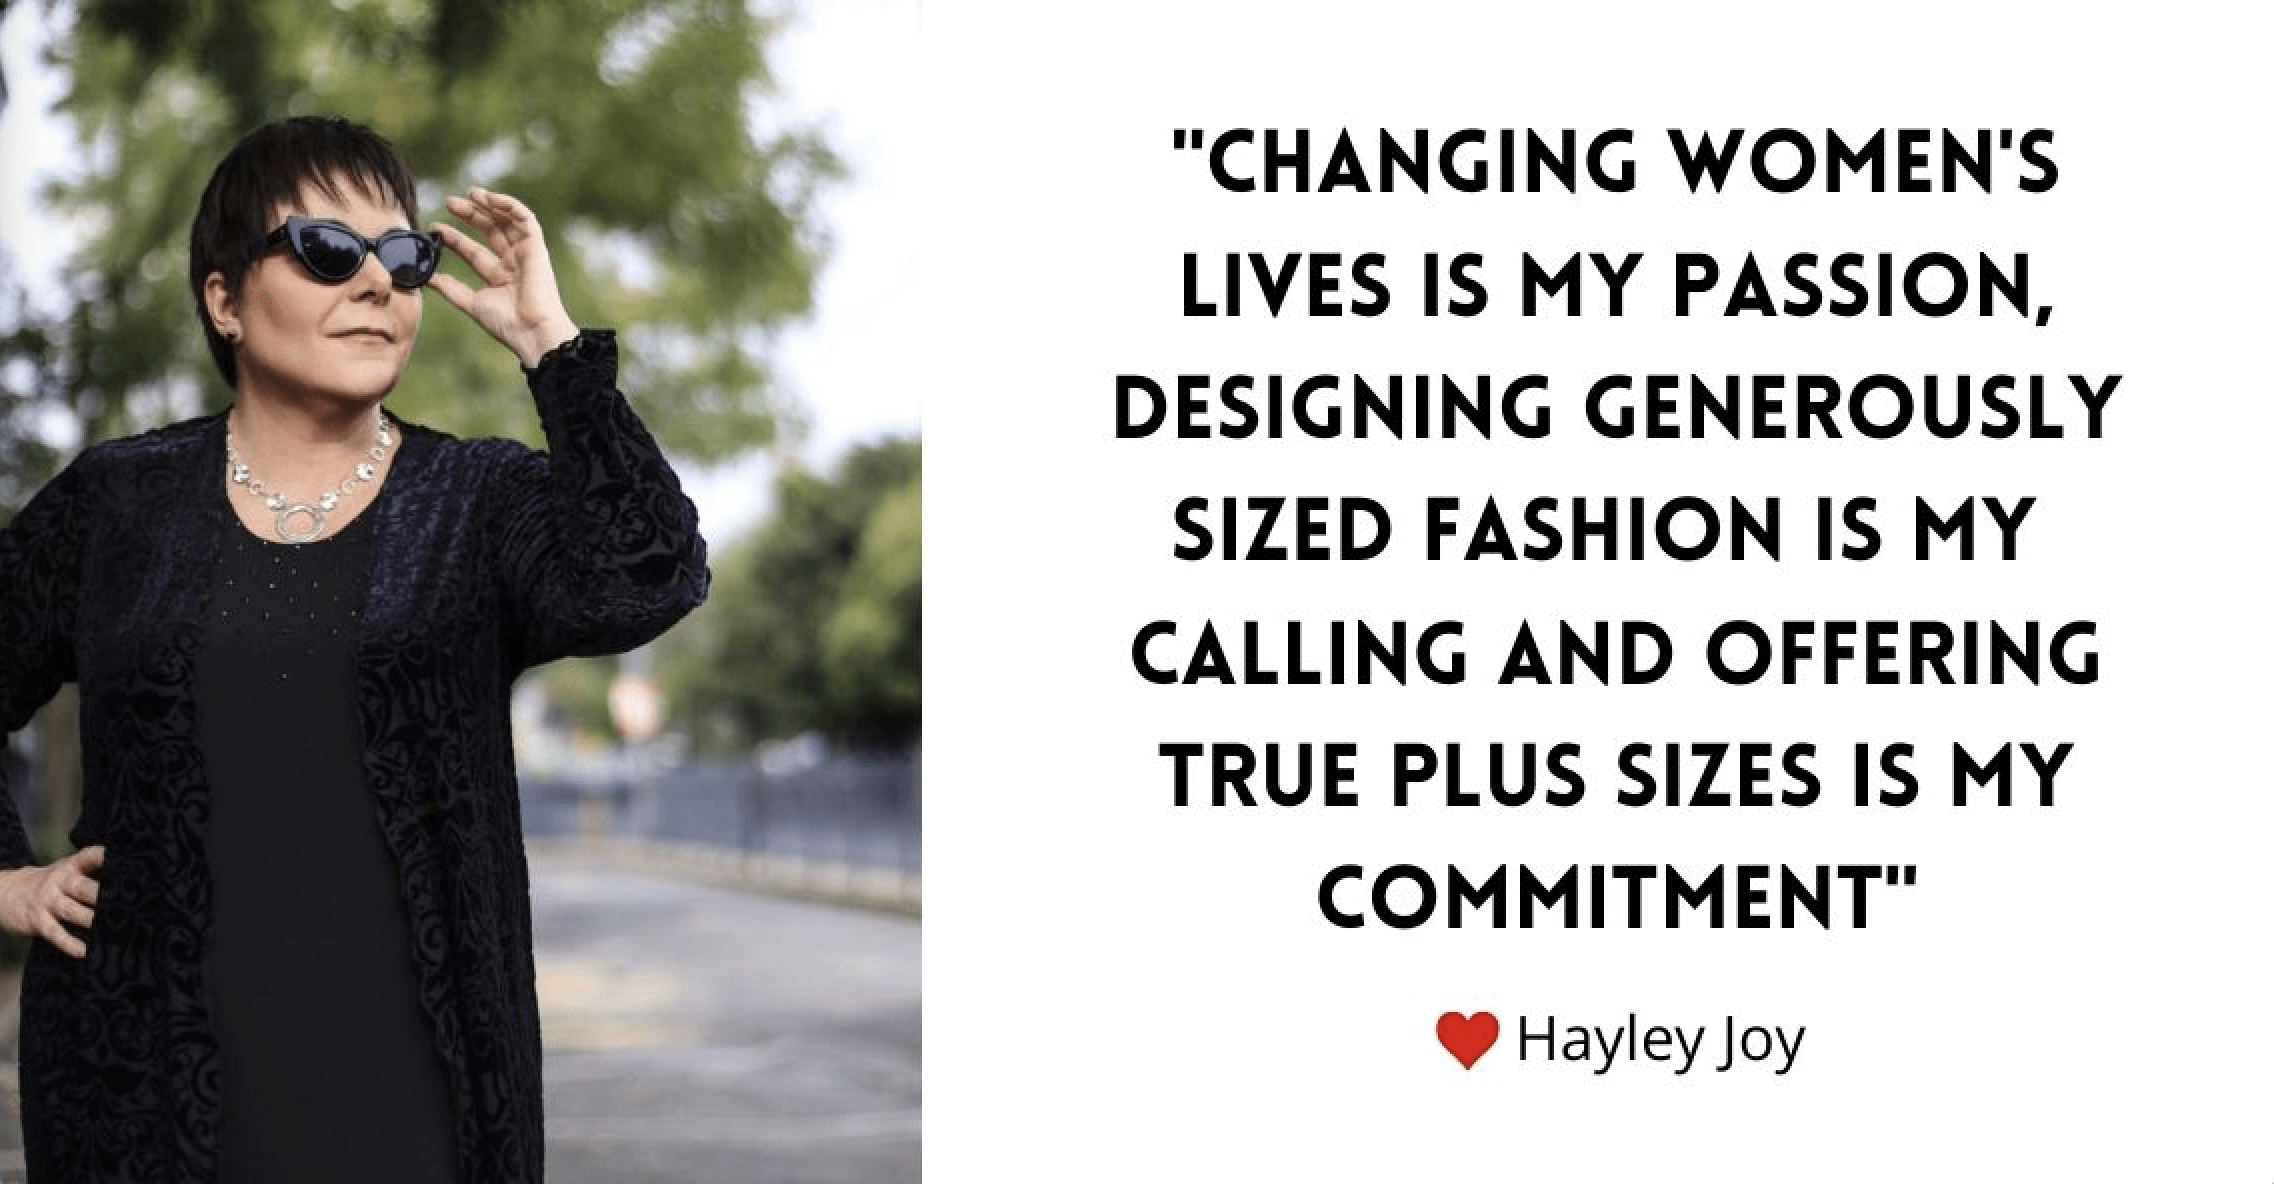 Hayley's commitment to designing and manufacturing real Plus size fashion.